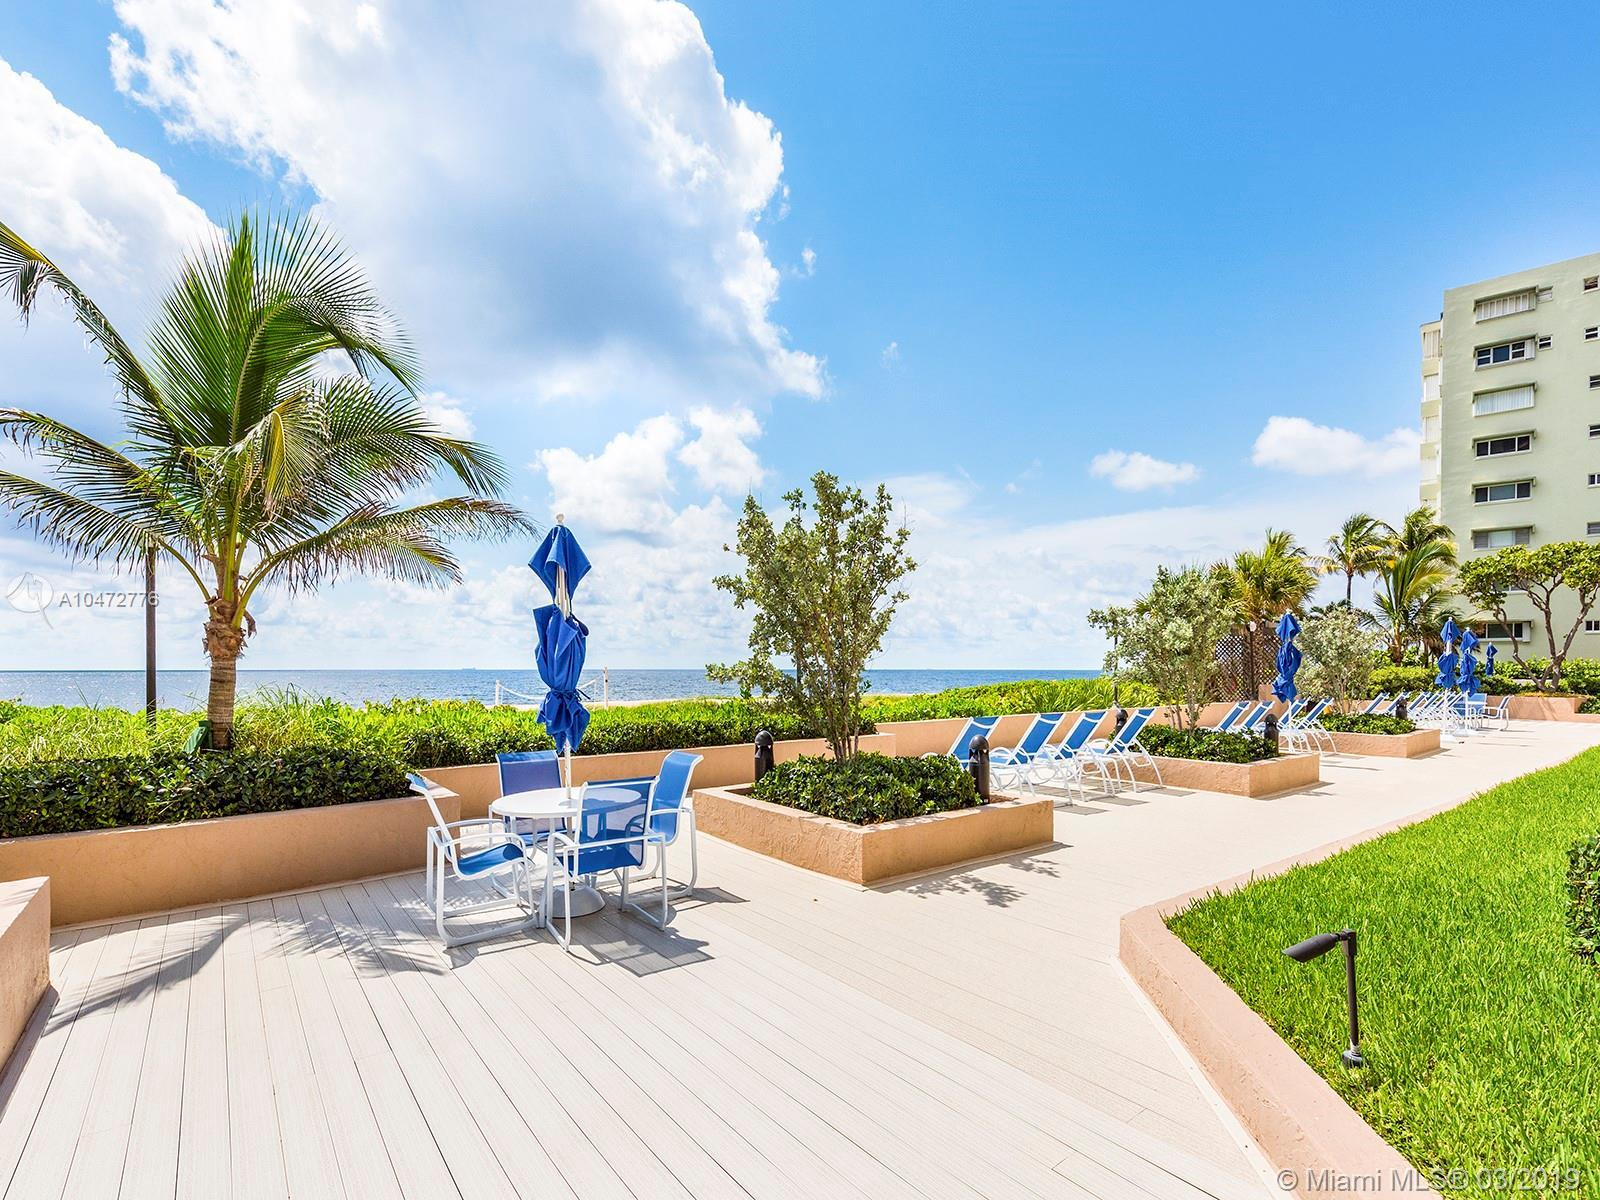 Steps to the sea from your patio! First floor condo with lush landscaping. Relax and watch the sunri